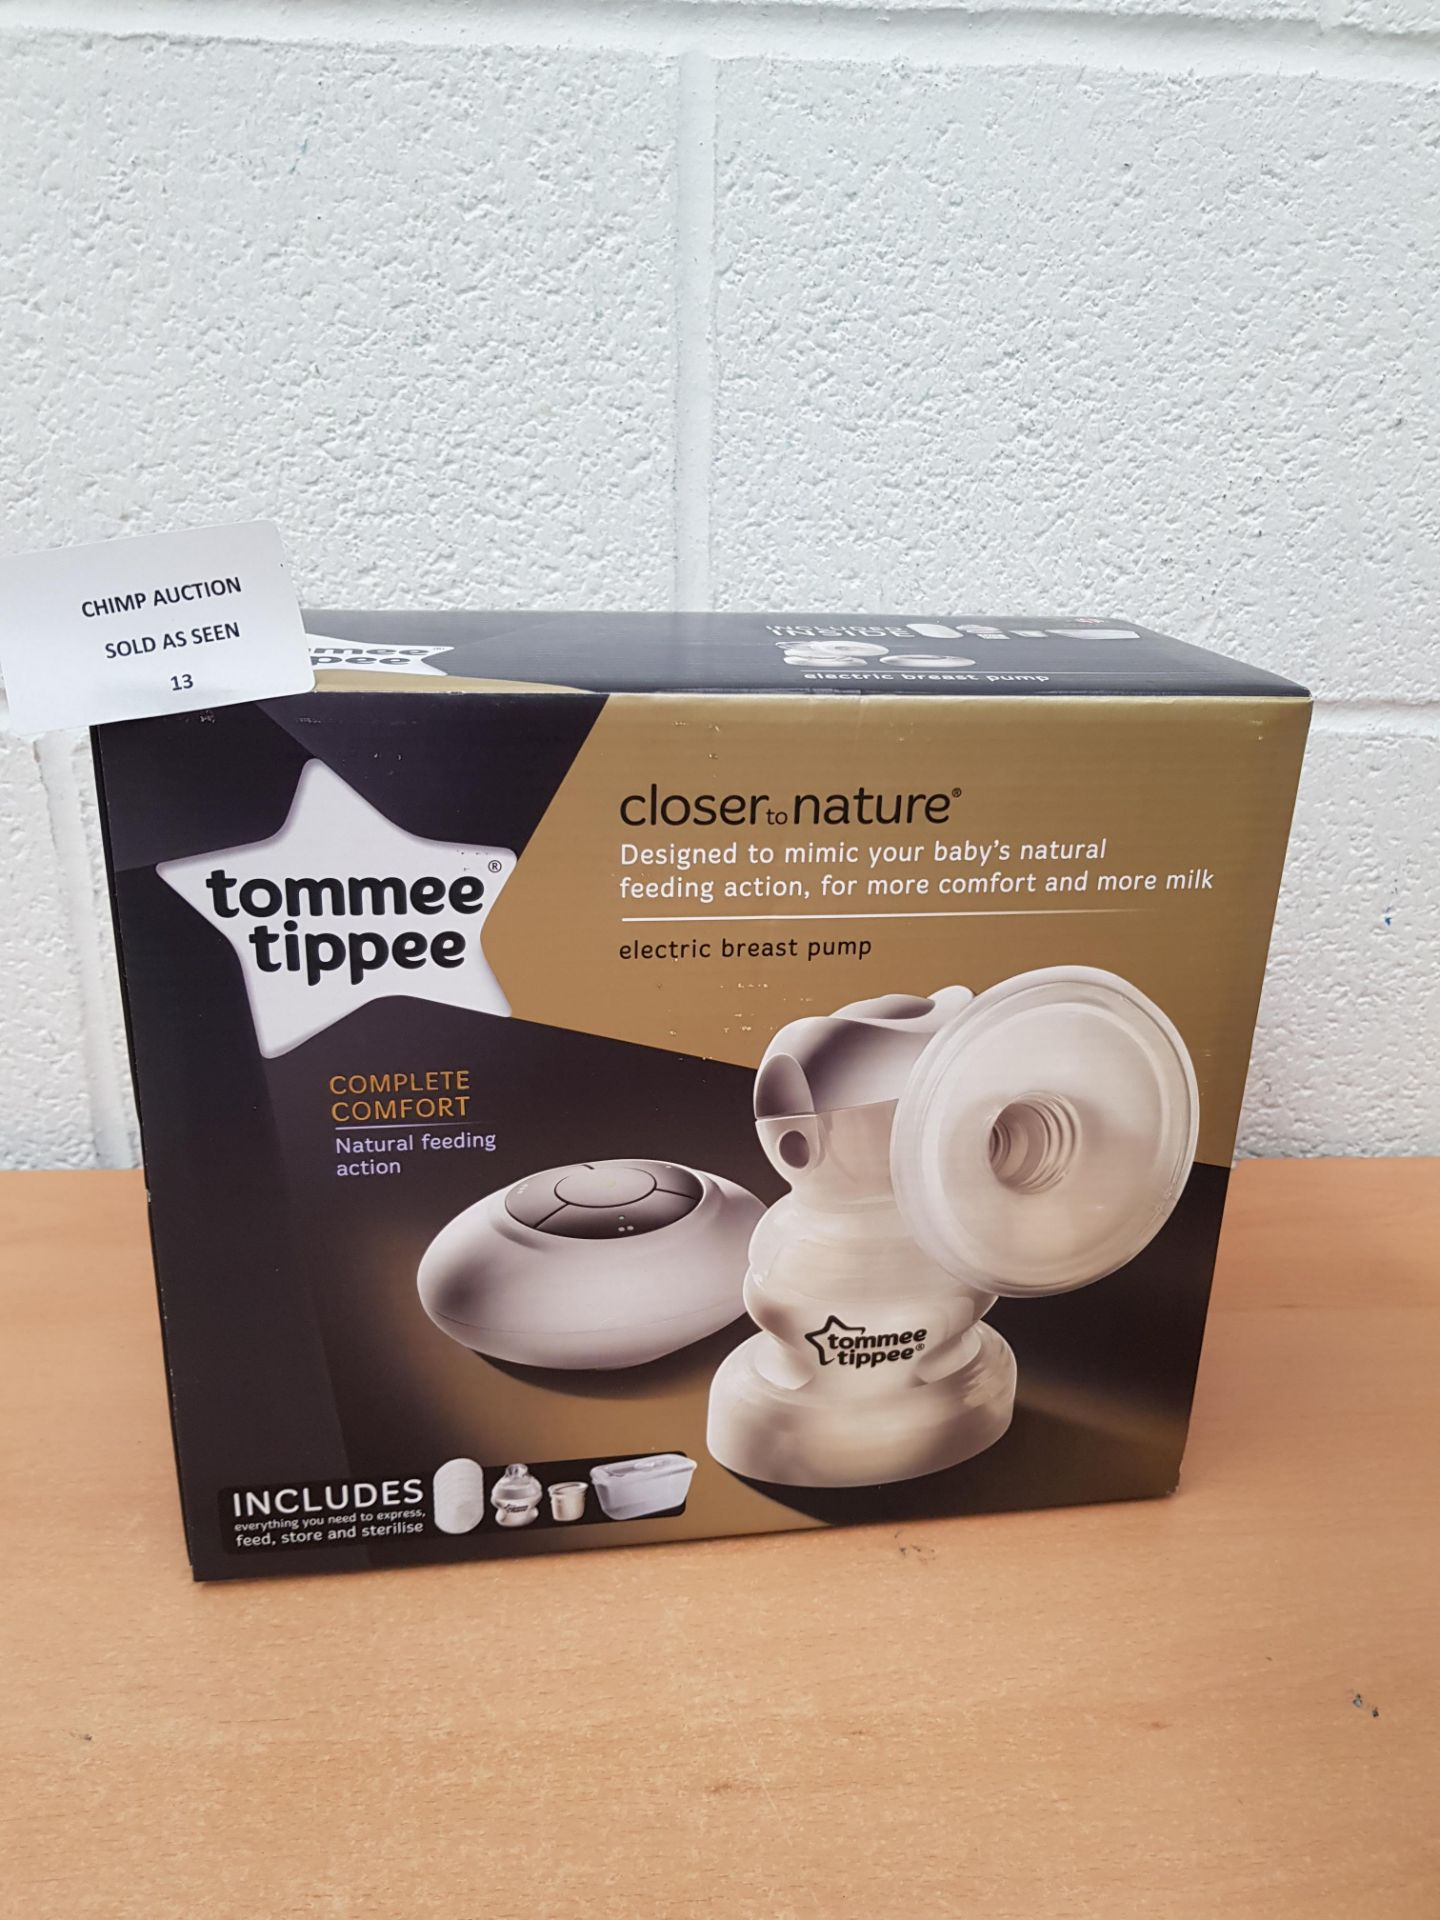 Lot 13 - Tommee Tippee Electric Breast Pump Kit RRP £129.99.